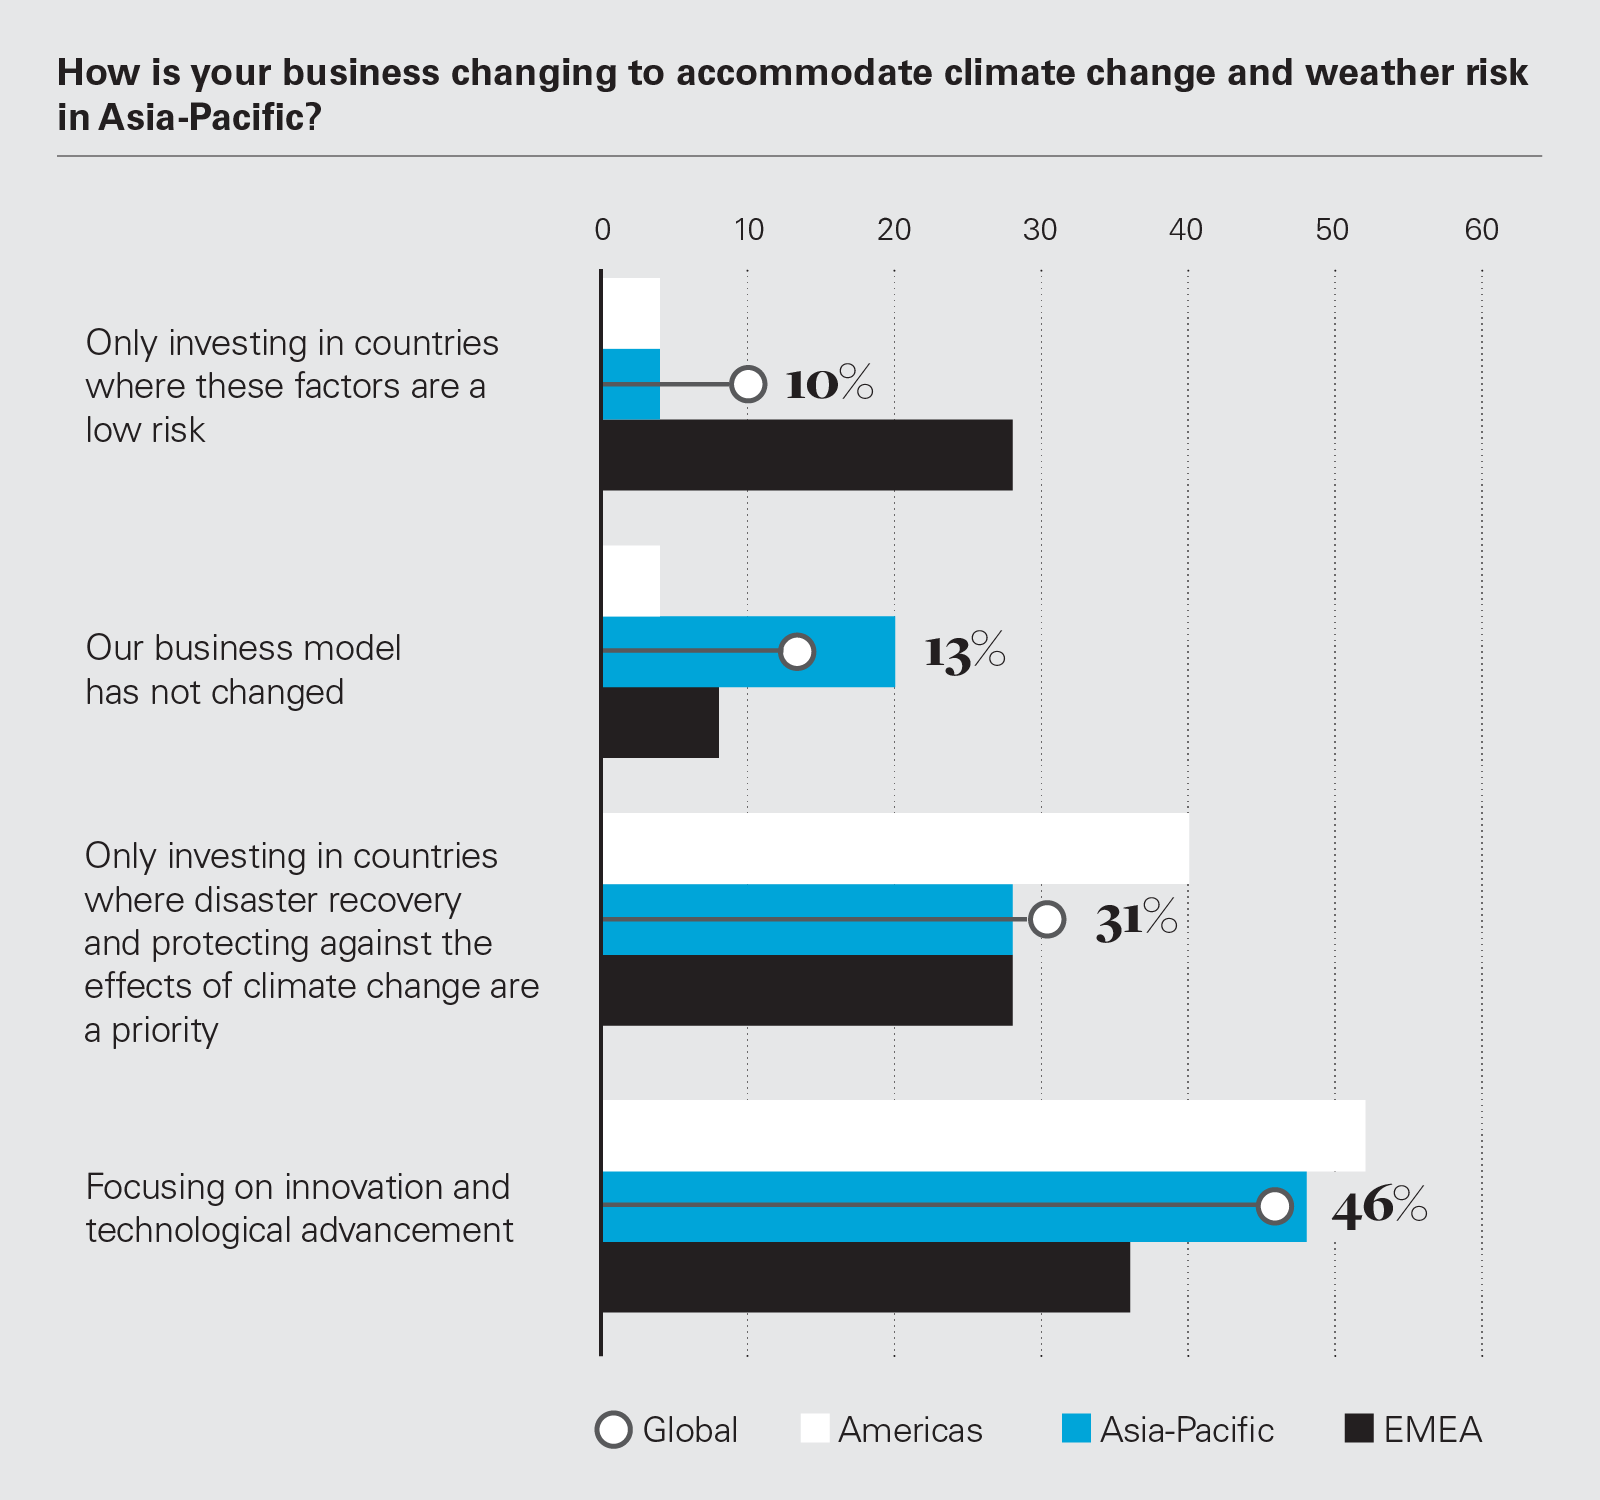 How is your business changing to accommodate climate change and weather risk in Asia-Pacific?